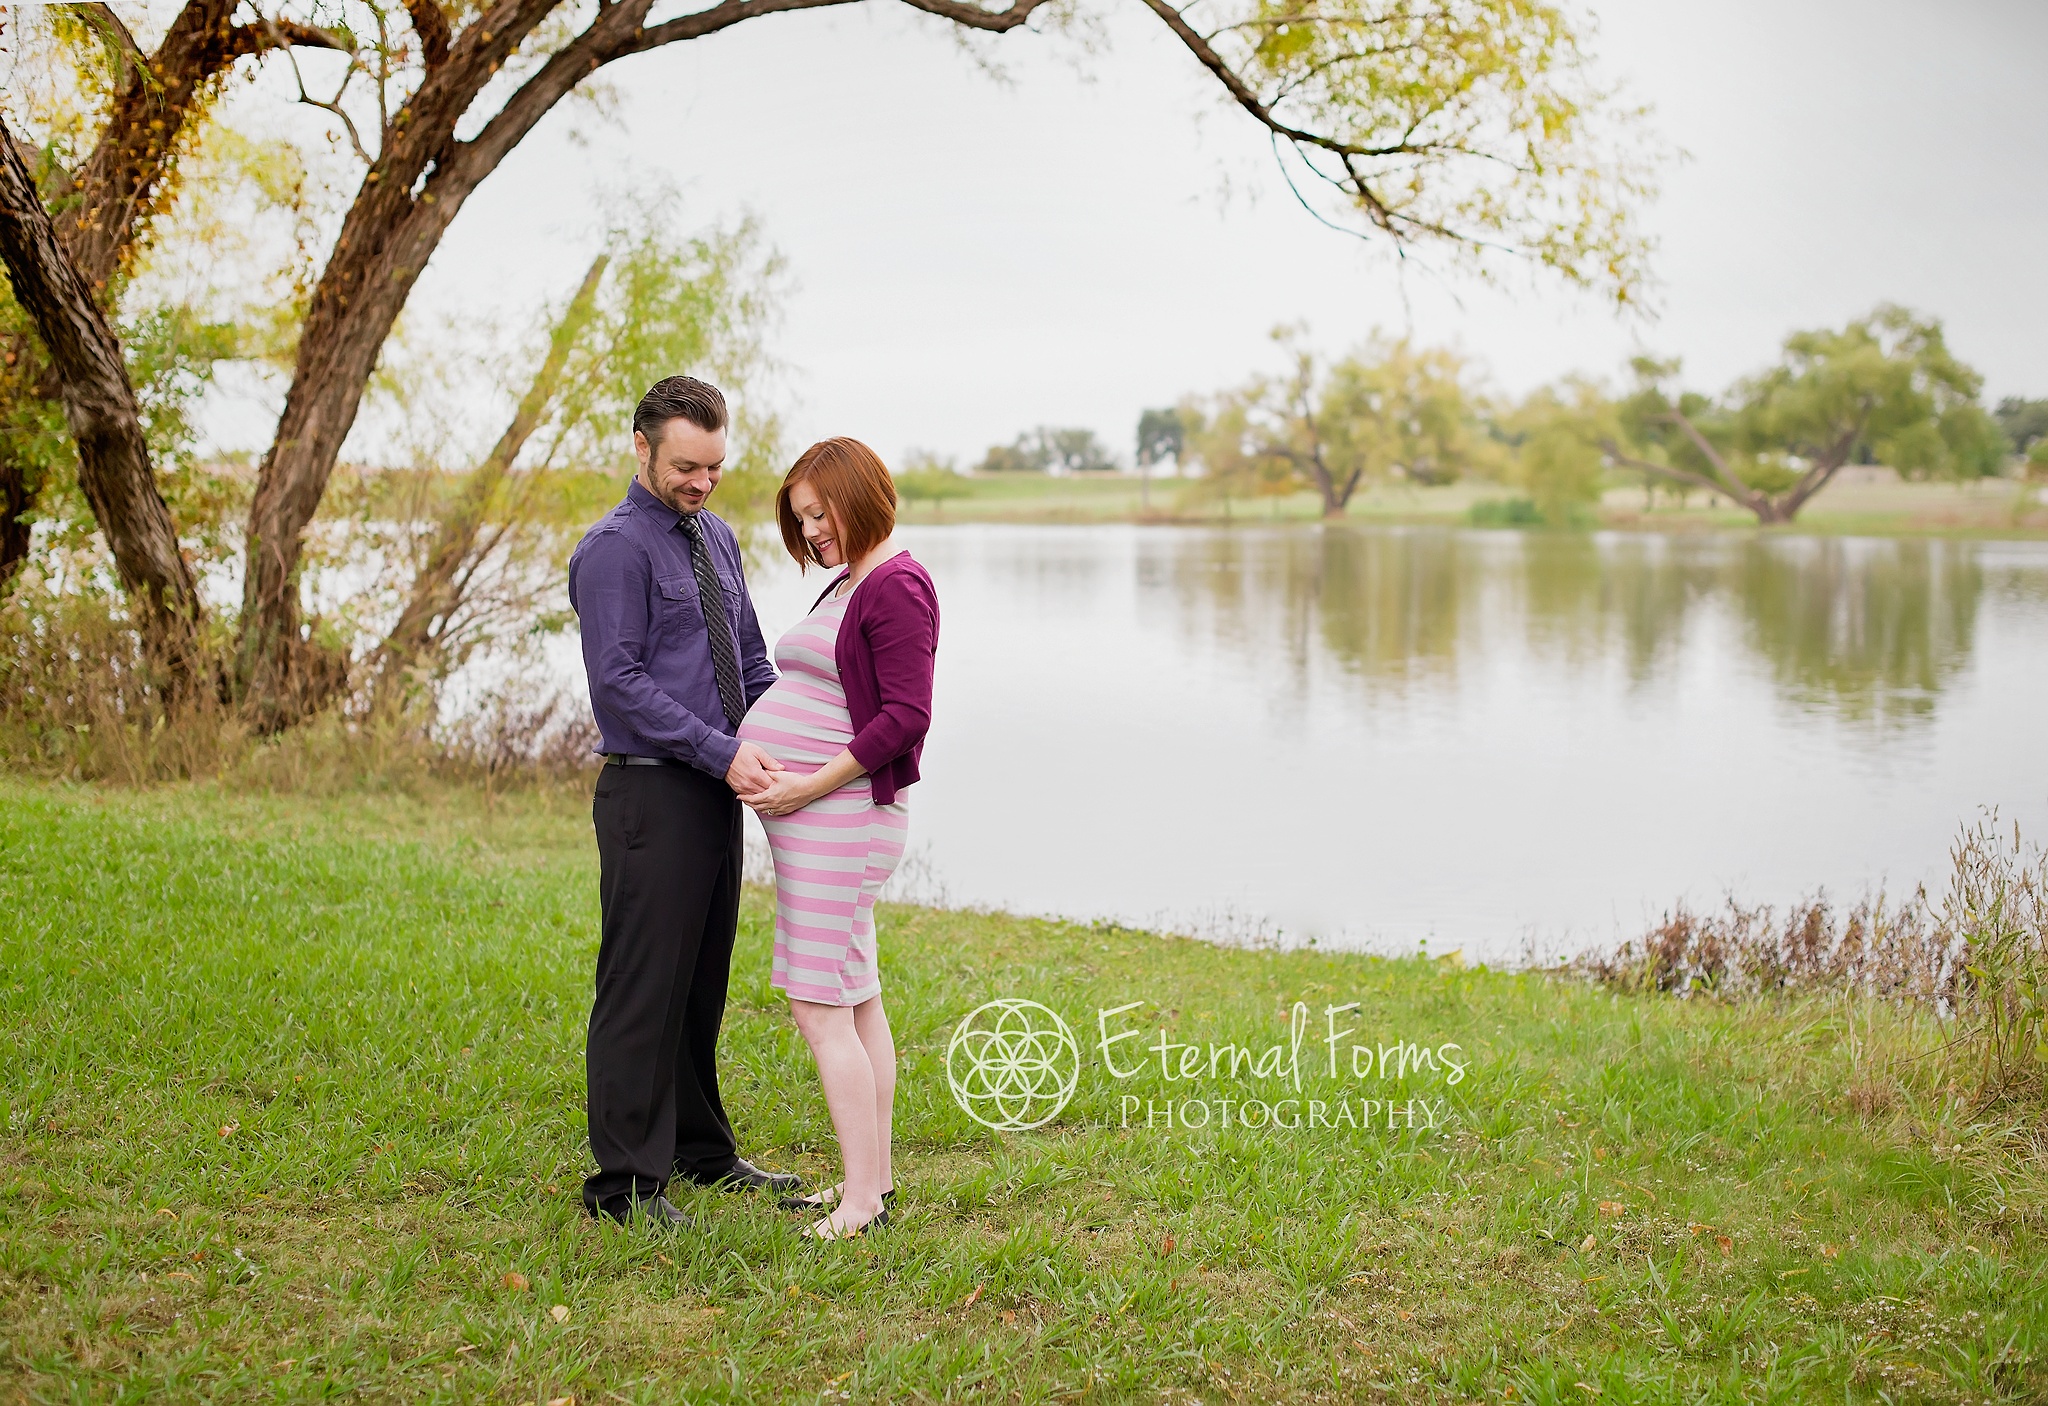 Maternity Photography Couple Poses